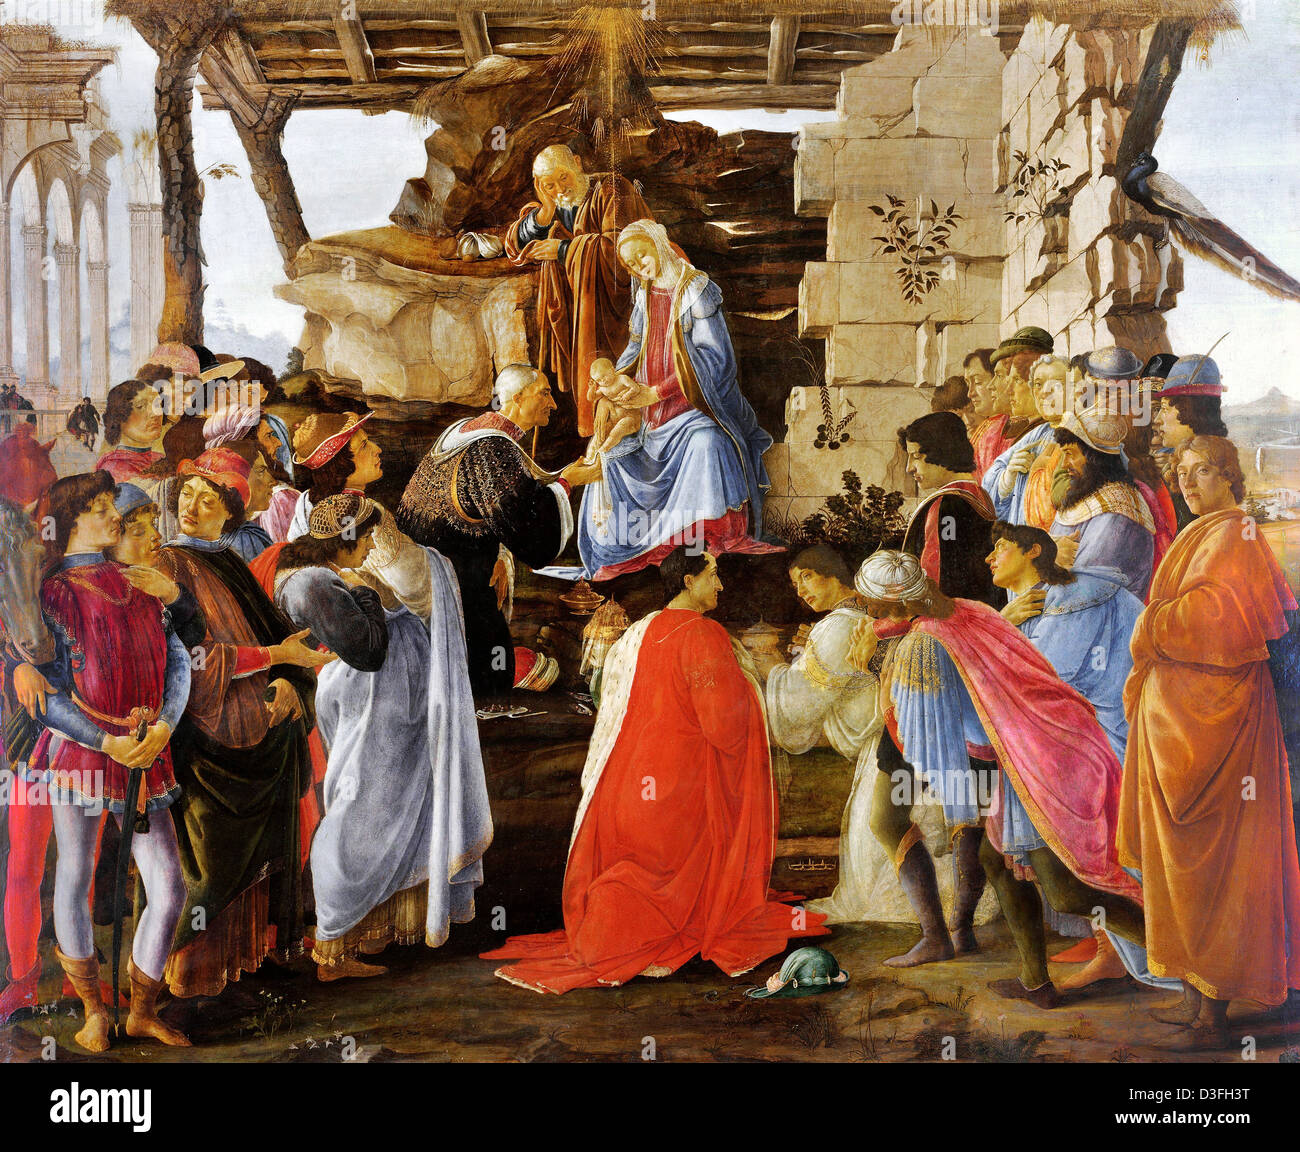 Sandro Botticelli, Adoration of the Magi 1475 Tempera on panel. Uffizi, Florence - Stock Image